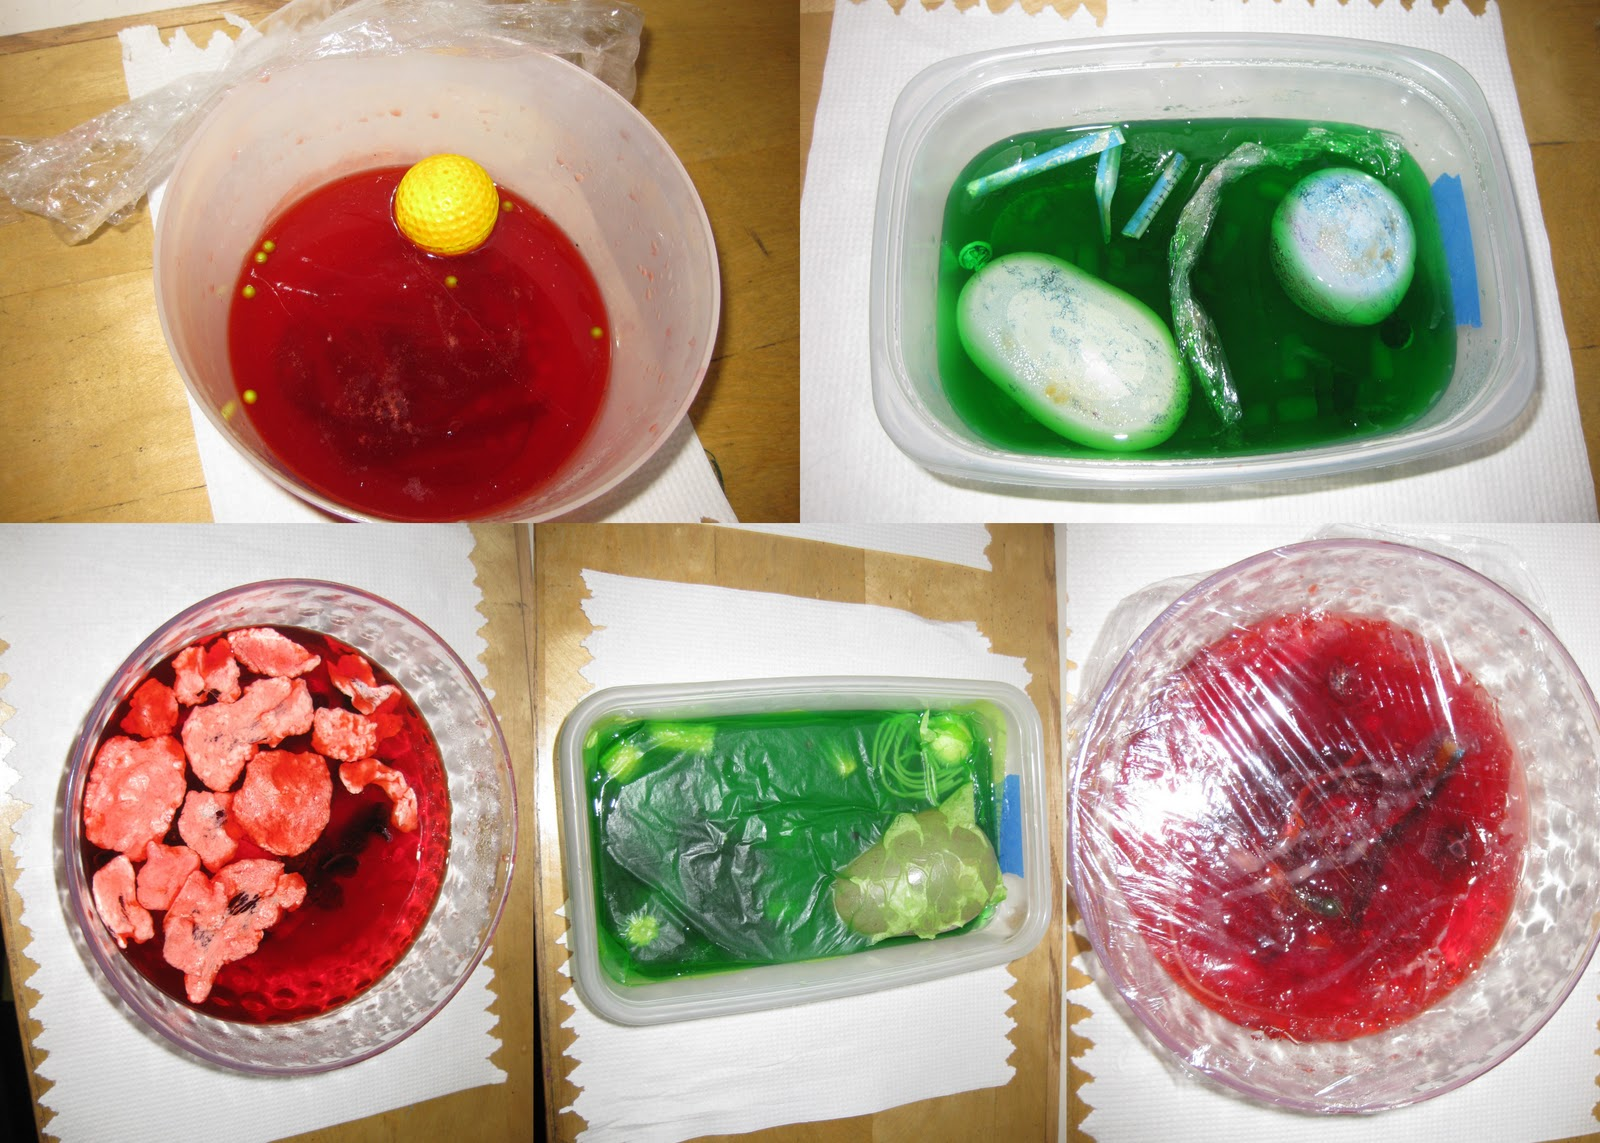 Plant Cell Project with Jello http://mrskoehnke.blogspot.com/2011/04/6th-grade-jello-cell-project_605.html